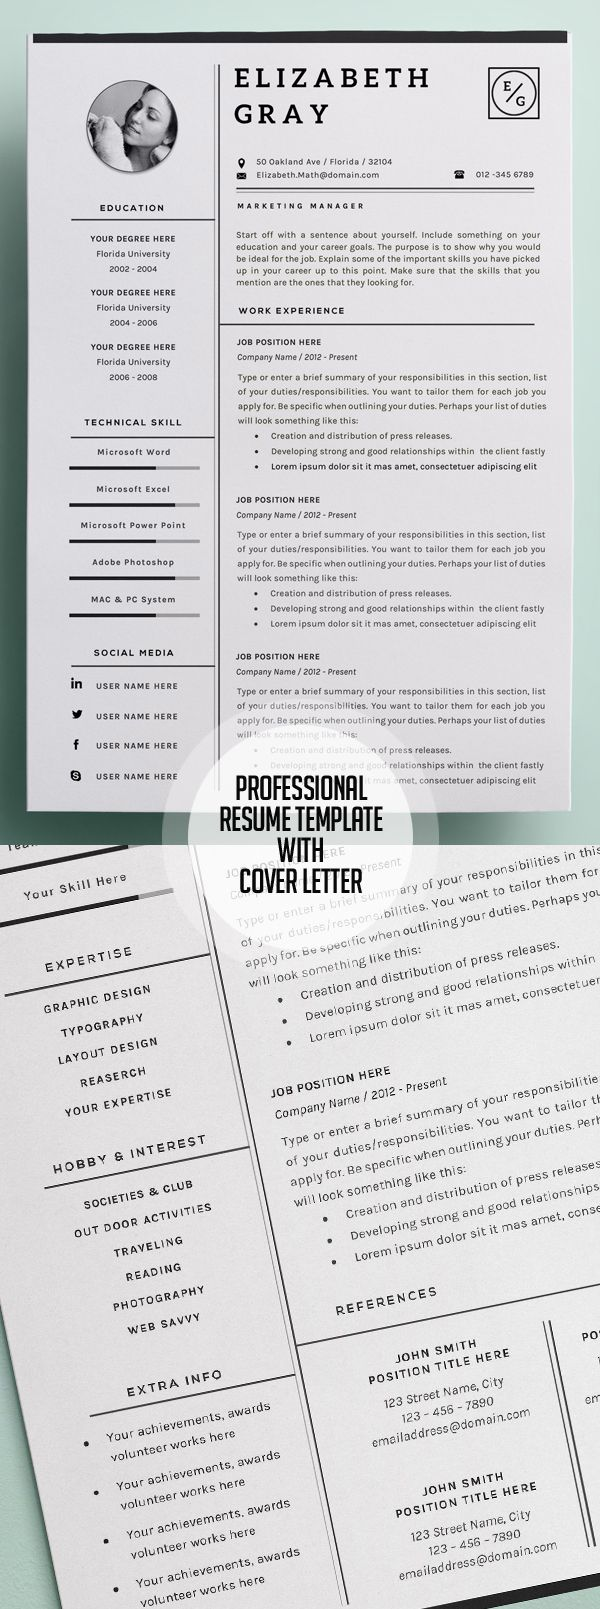 Picnictoimpeachus  Pleasing  Resume Ideas On Pinterest  Resume Resume Templates And  With Handsome Professional And Modern Resume Template With Page Cover Cvtemplate With Charming Marketing Resume Keywords Also Resume For High School Graduate With No Work Experience In Addition Sterile Processing Technician Resume And Aba Therapist Resume As Well As Leadership Experience Resume Additionally Investment Banking Resume Example From Pinterestcom With Picnictoimpeachus  Handsome  Resume Ideas On Pinterest  Resume Resume Templates And  With Charming Professional And Modern Resume Template With Page Cover Cvtemplate And Pleasing Marketing Resume Keywords Also Resume For High School Graduate With No Work Experience In Addition Sterile Processing Technician Resume From Pinterestcom